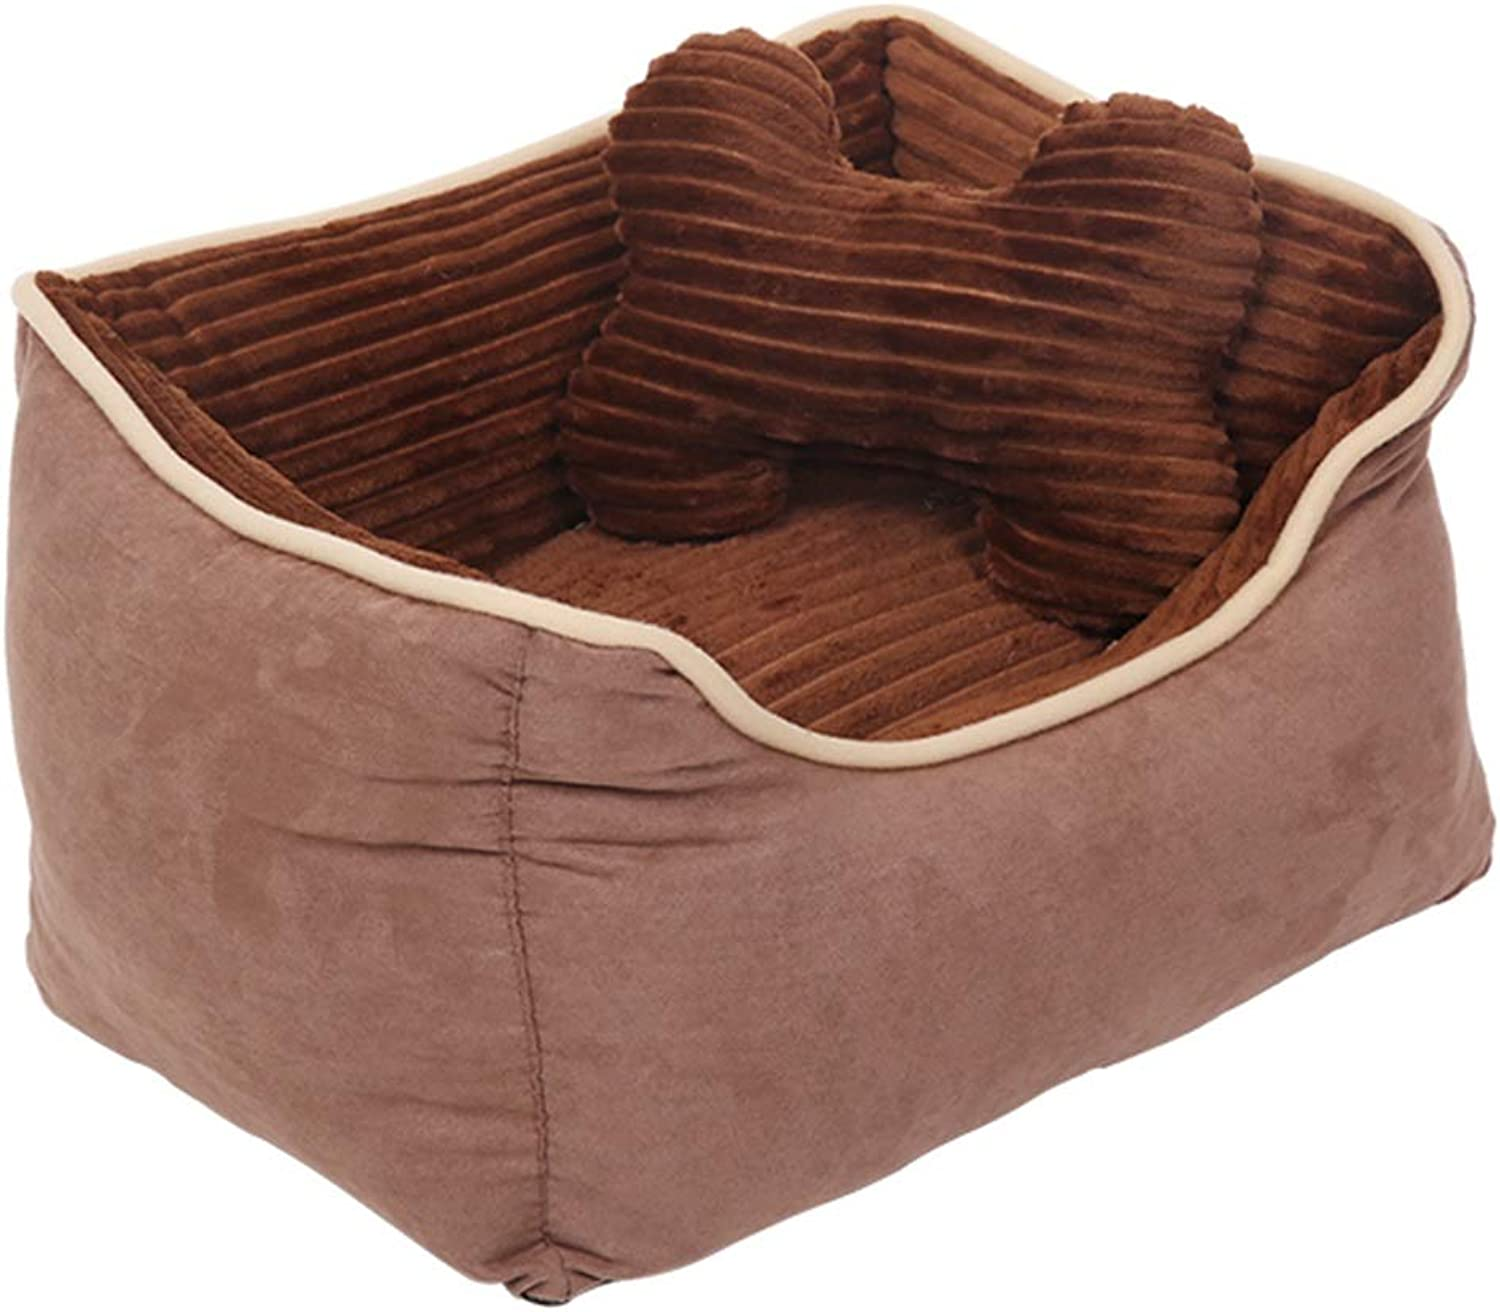 LXLA  Warm Grooved Dog Bed Basket with Corduroy Lining and Suede Sides, Washable & NonSlip (Size   S 45×35×22cm)